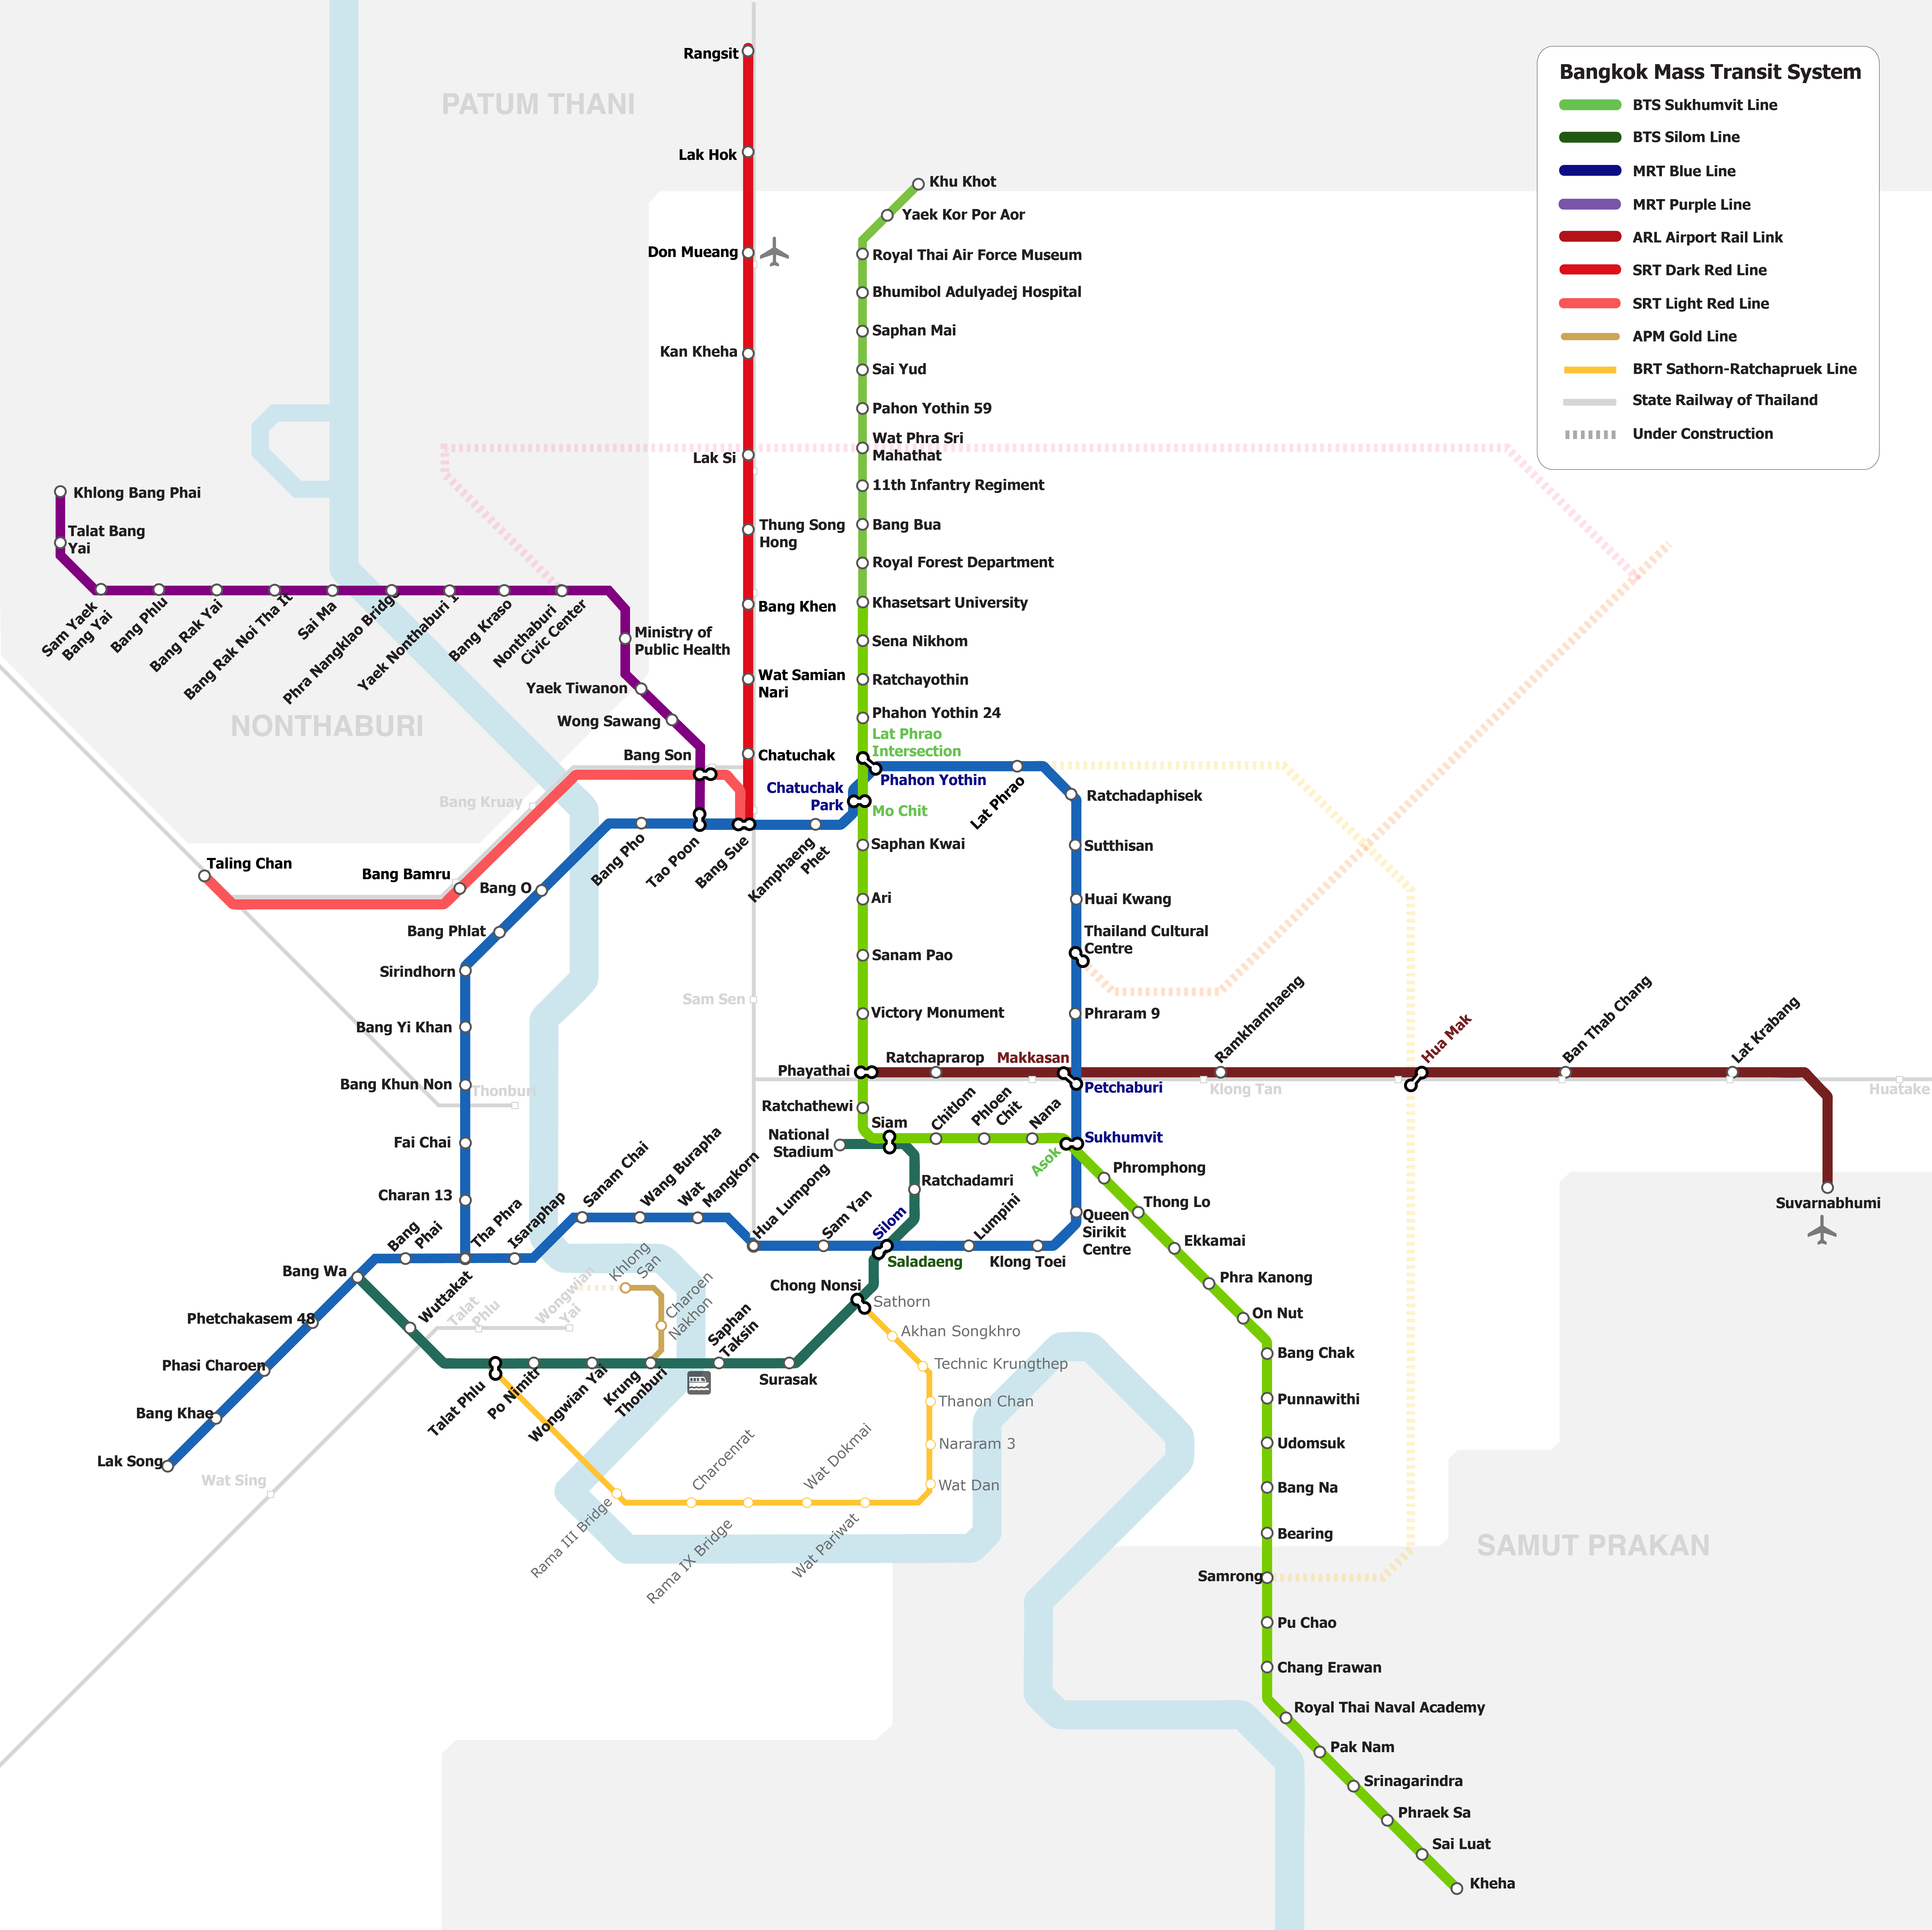 airport rail link map Mass Rapid Transit Master Plan In Bangkok Metropolitan Region airport rail link map